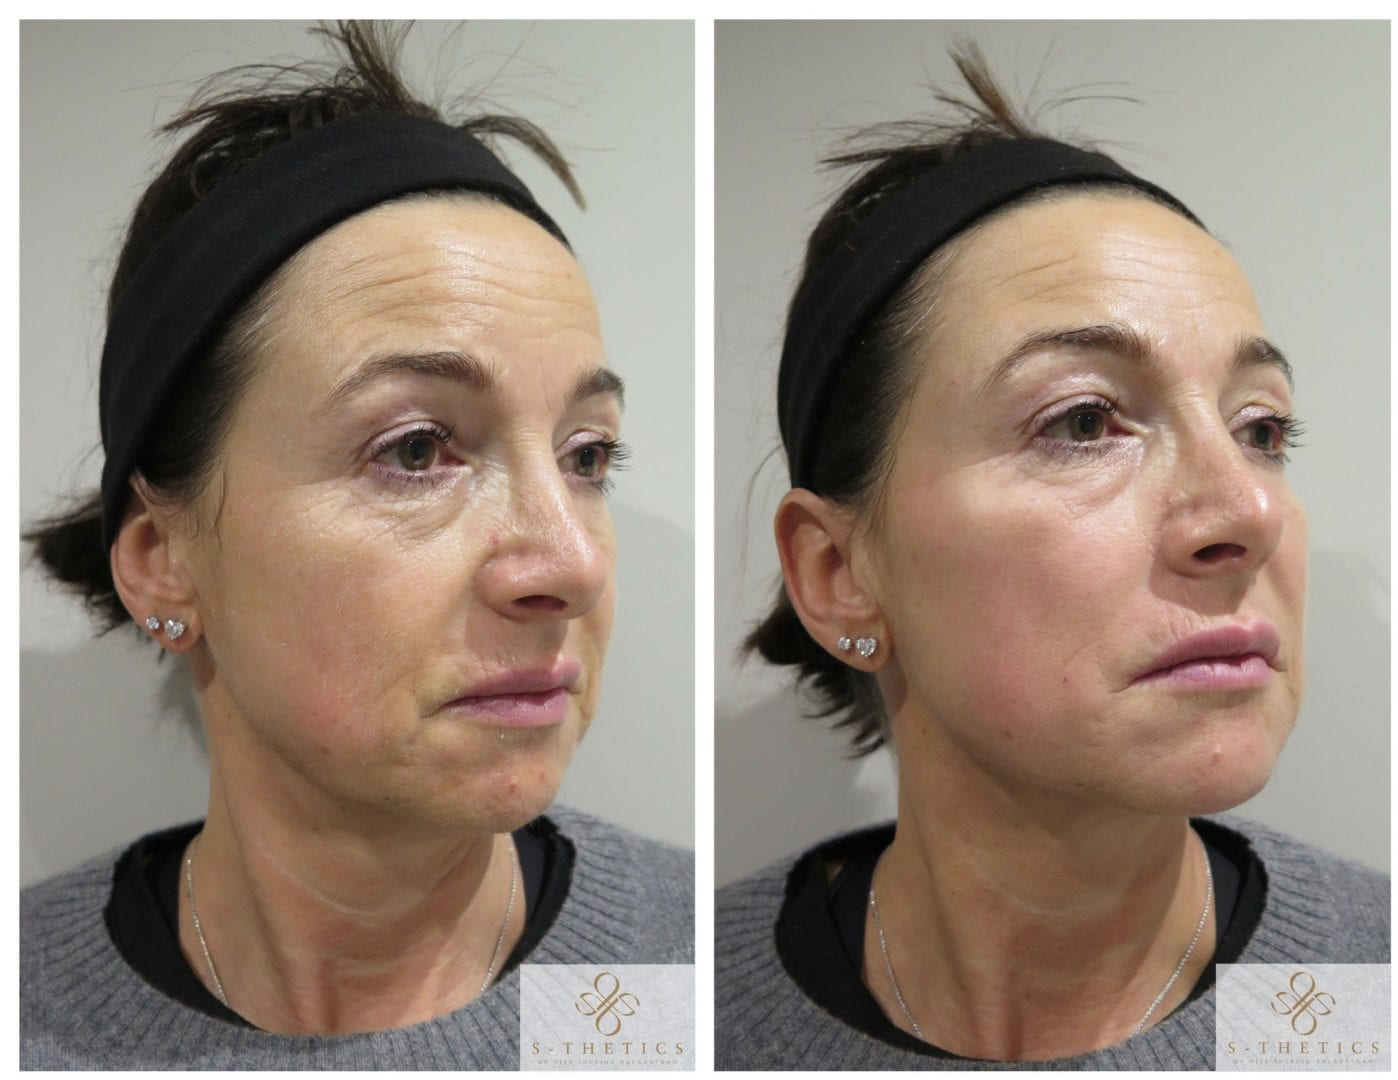 dermal-filler-treatment-at-S-Thetics-Skin-Clinic-in-Beaconsfield-Buckinghamshire-